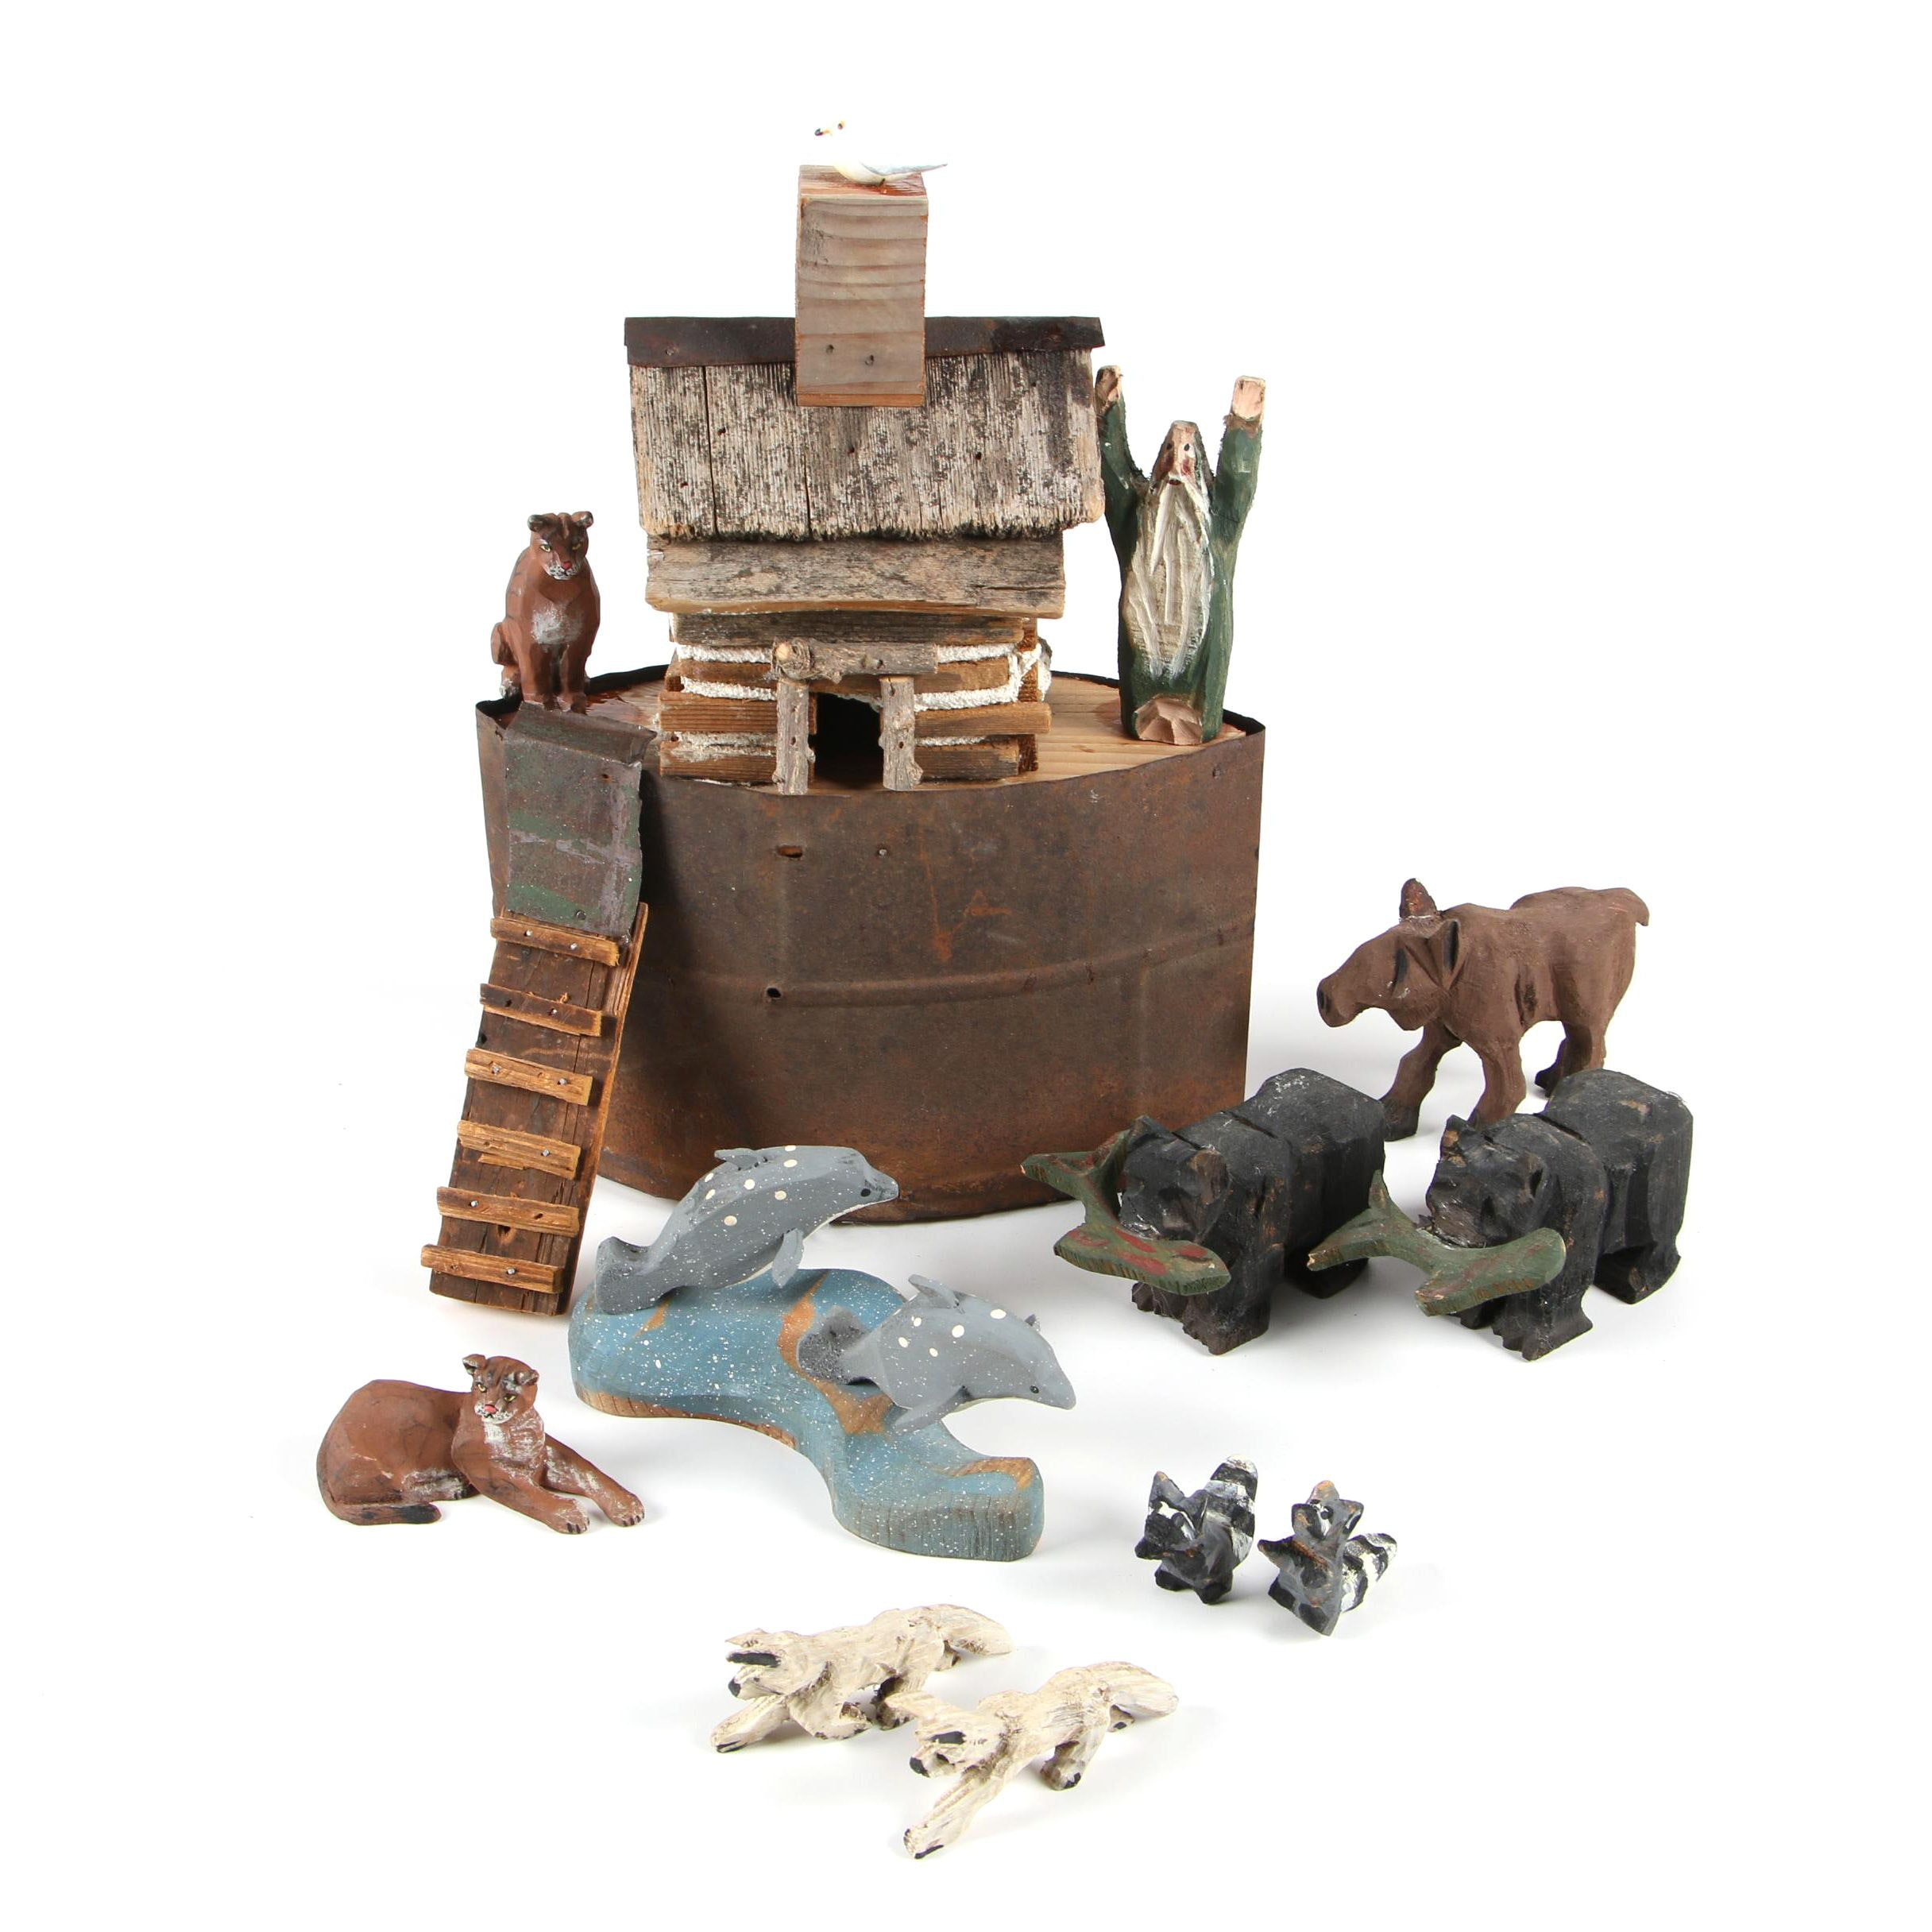 Folk Art Style Noah's Ark with Carved Wood Figurines